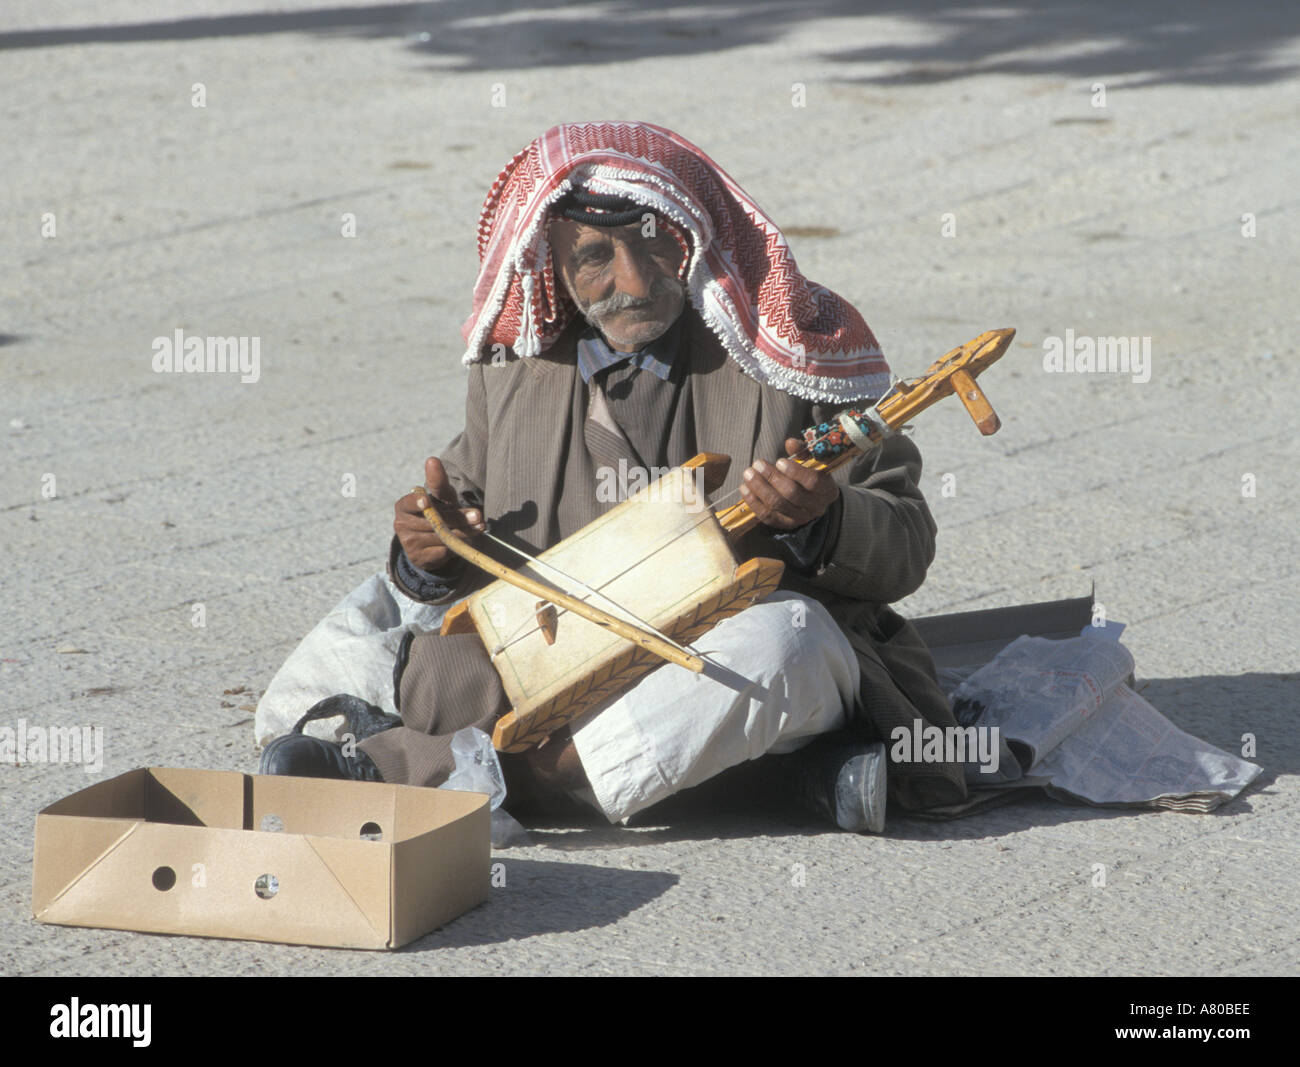 Palestinian man busking playing traditional Rubarba Rabala with his foot in Manger Square Bethlehem Palestinian National Authori - Stock Image